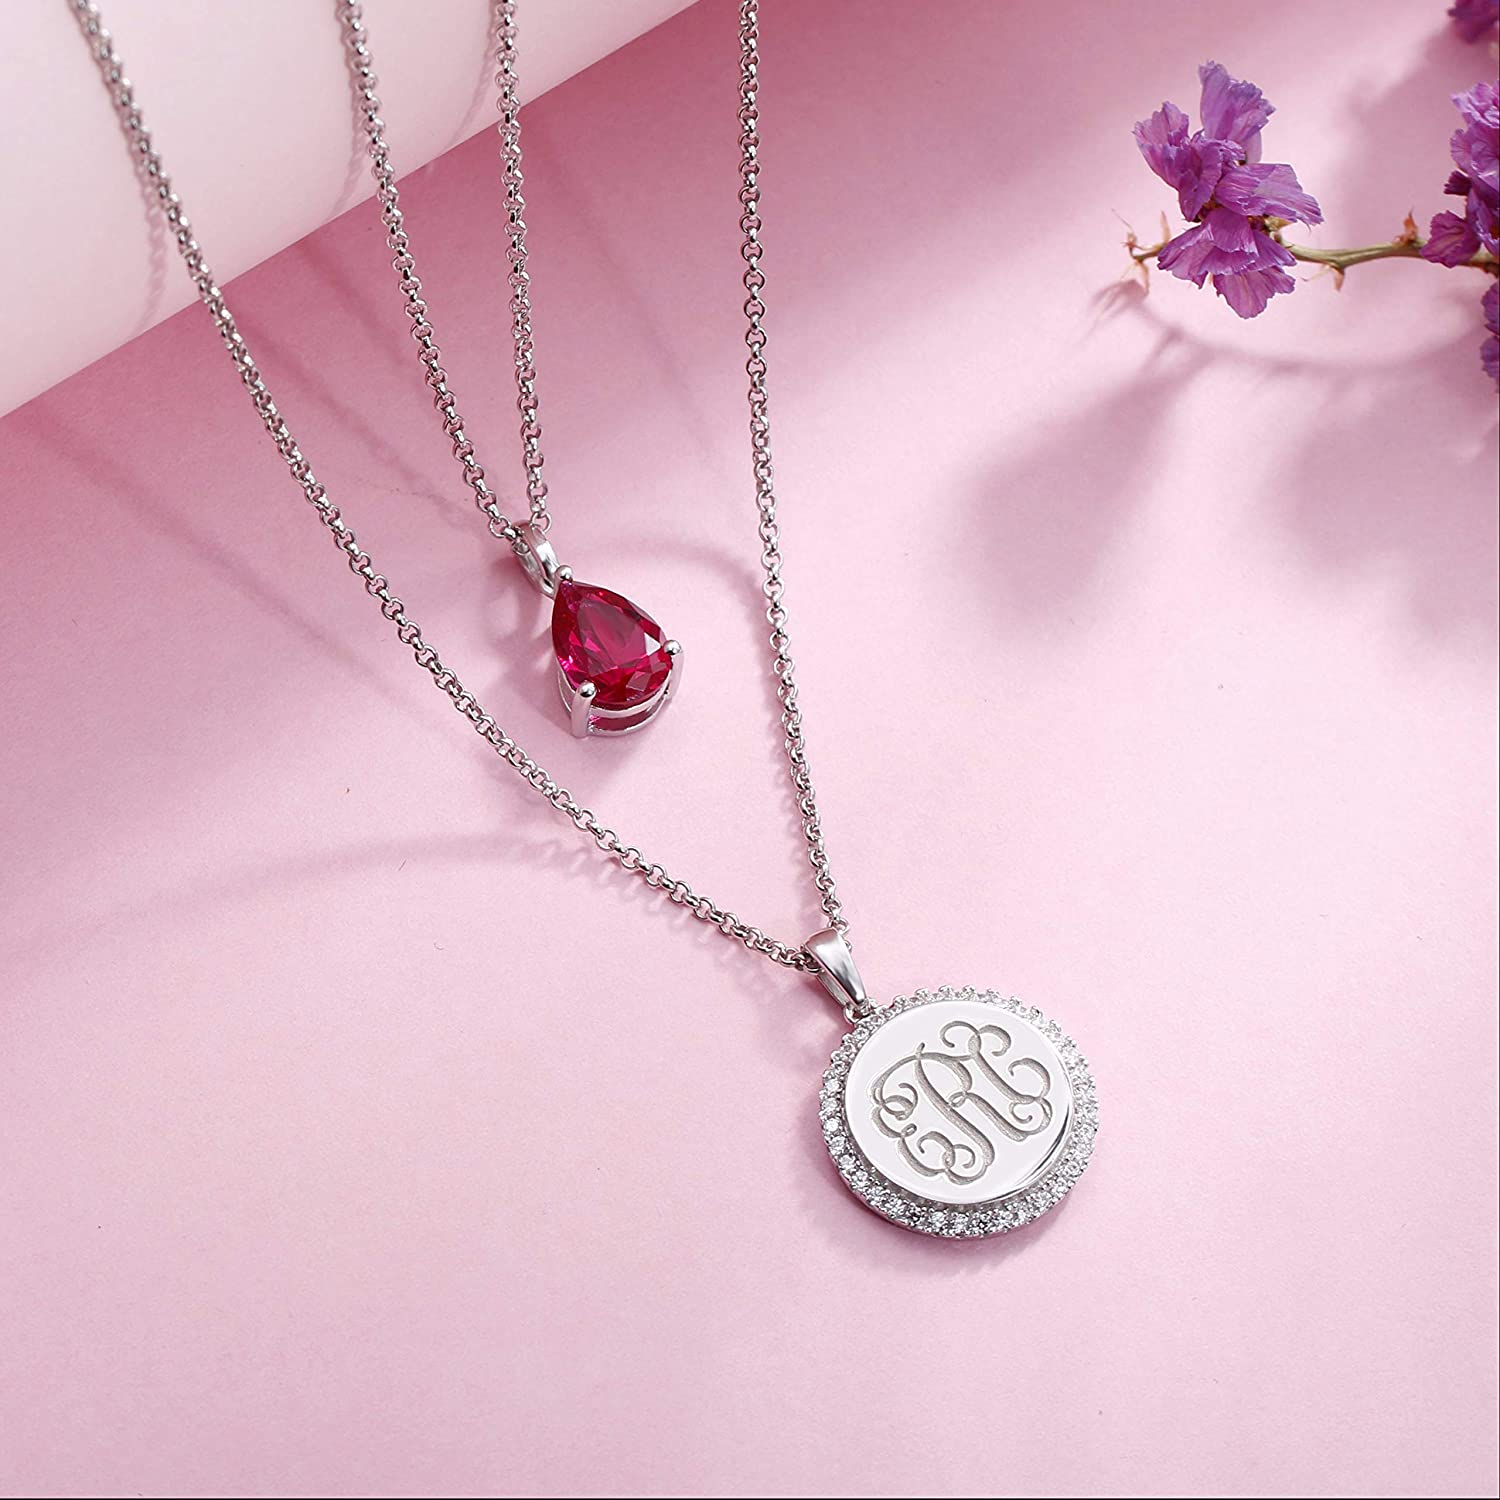 Getname Necklace Personalized Custom 2 Layered Monogram Initial Necklace 925 Sterling Silver with Birthstone for Women